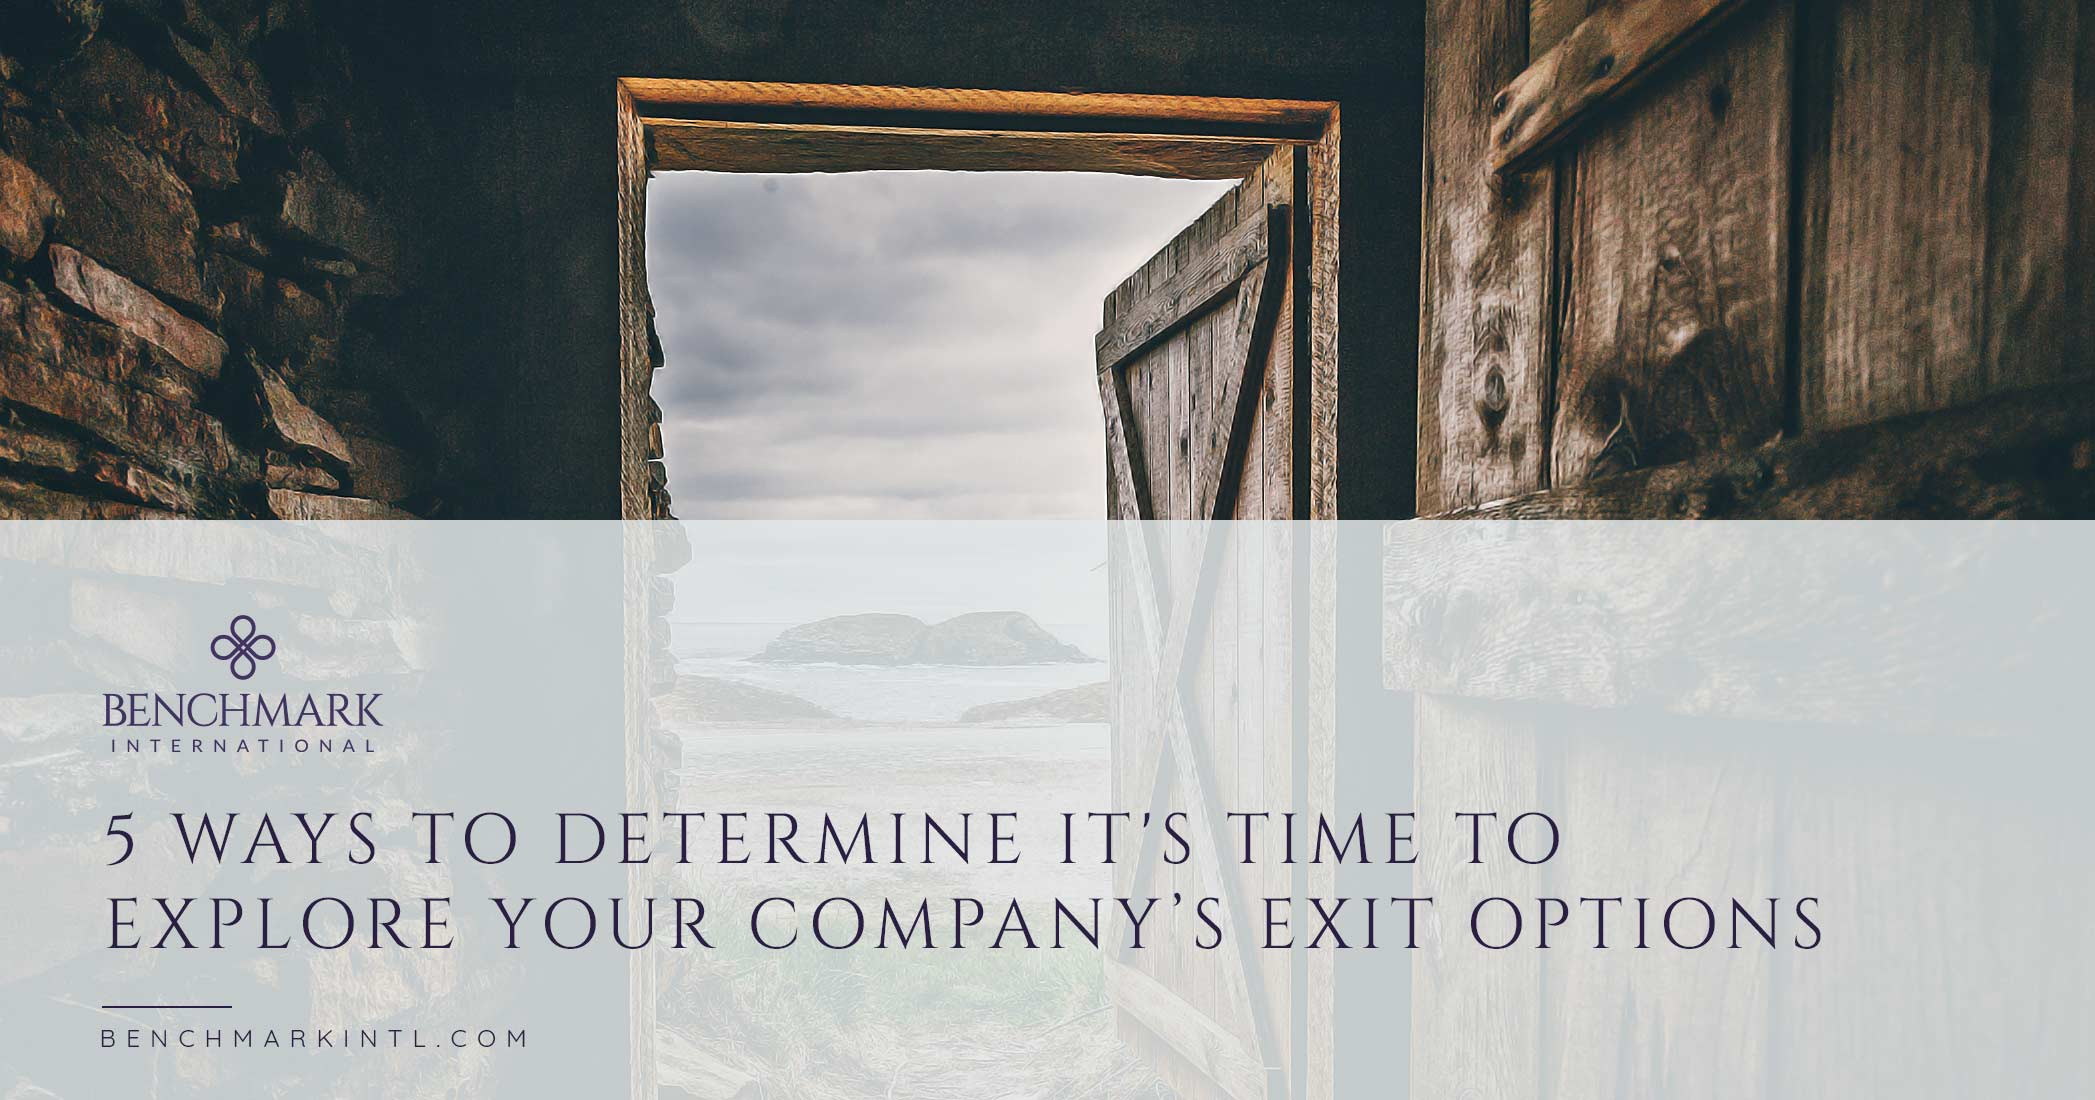 5 Ways To Determine It's Time To Explore Your Company's Exit Options